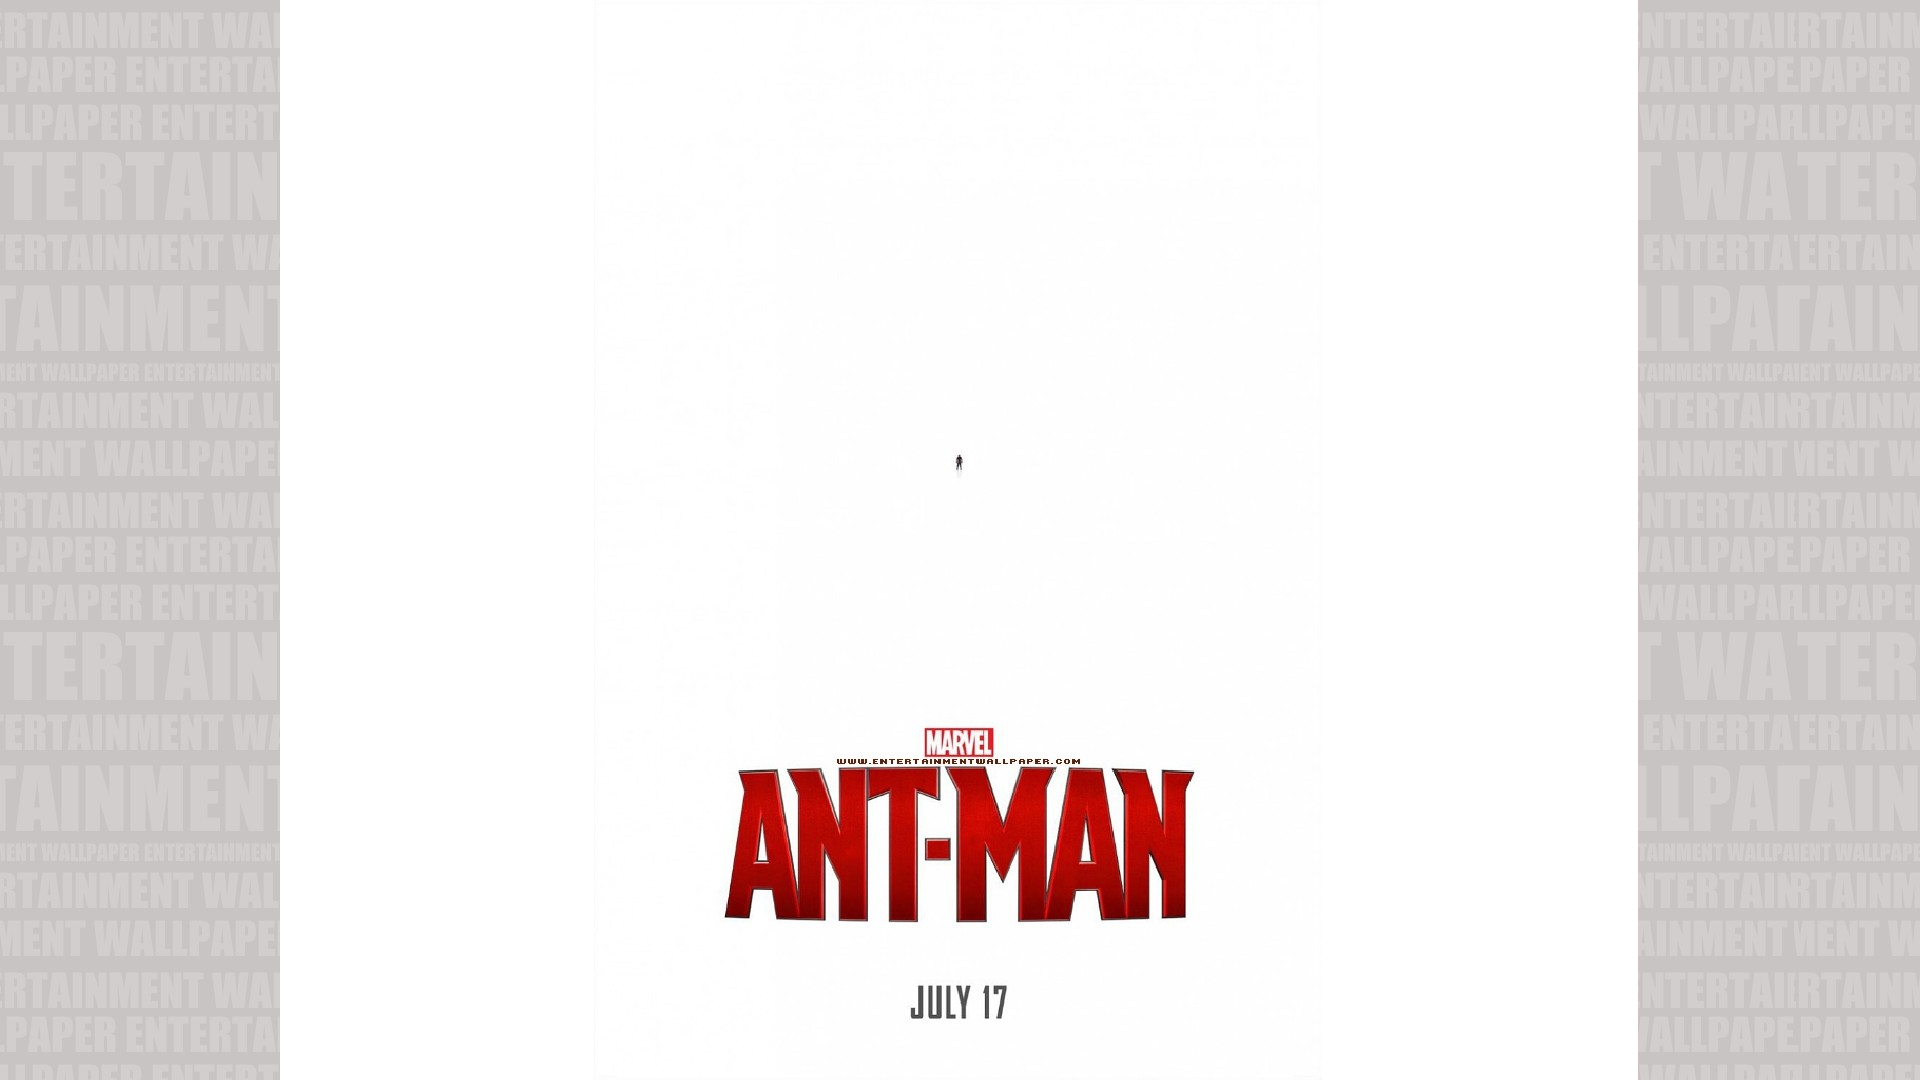 show ant man wallpaper 10045516 size 1920x1080 more ant man wallpaper 1920x1080